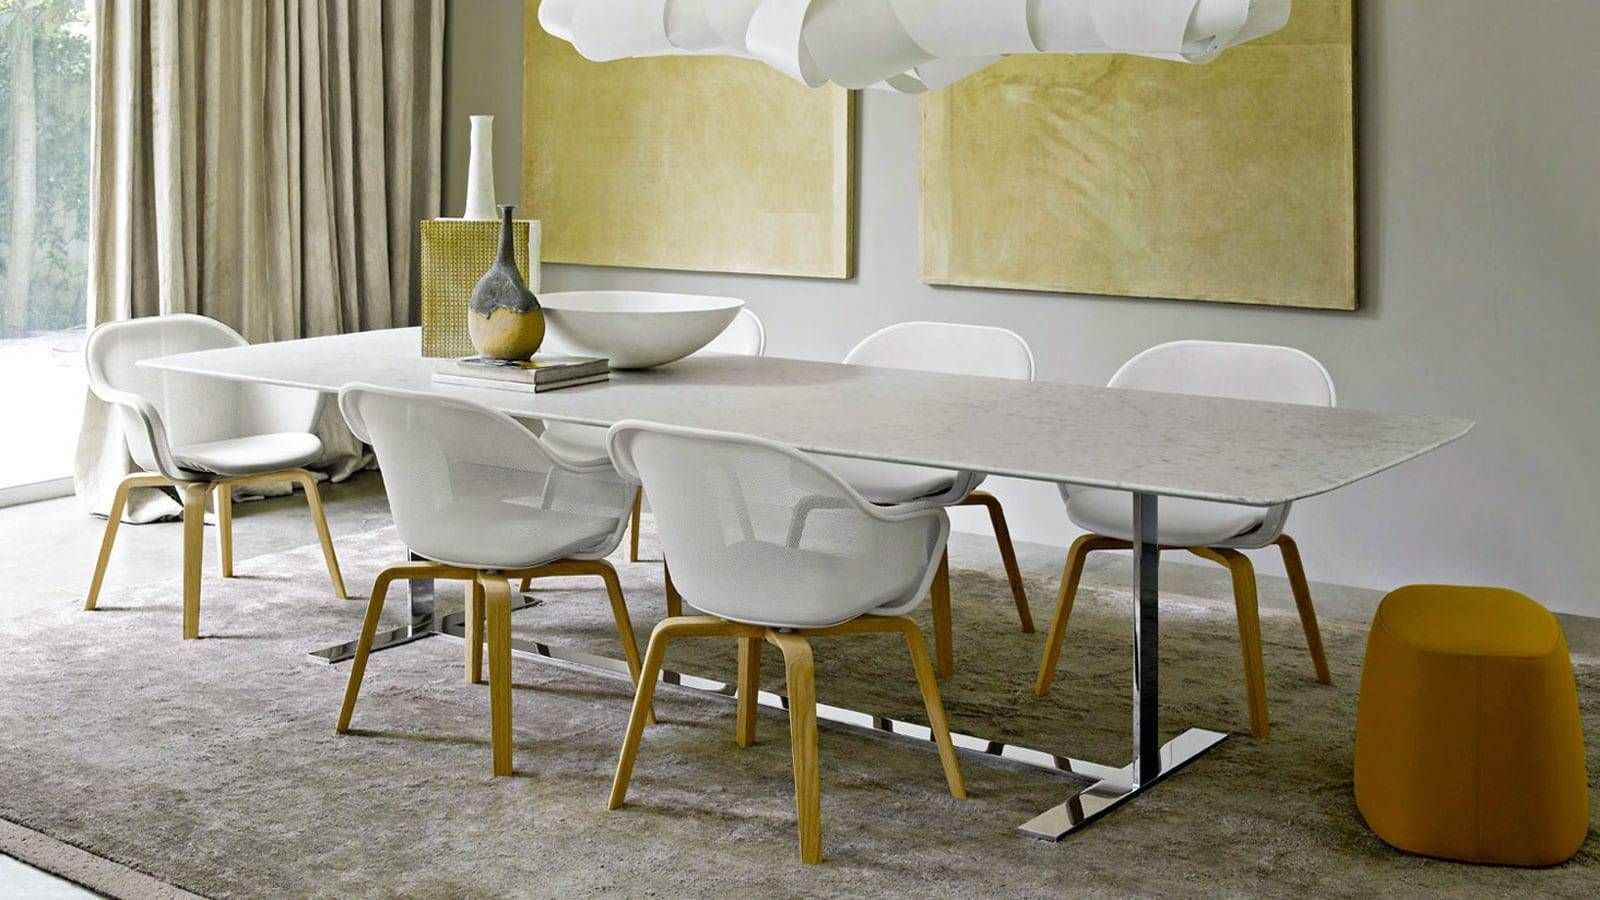 contemporary design furniture by Antonio Citterio for B&B ITALIA